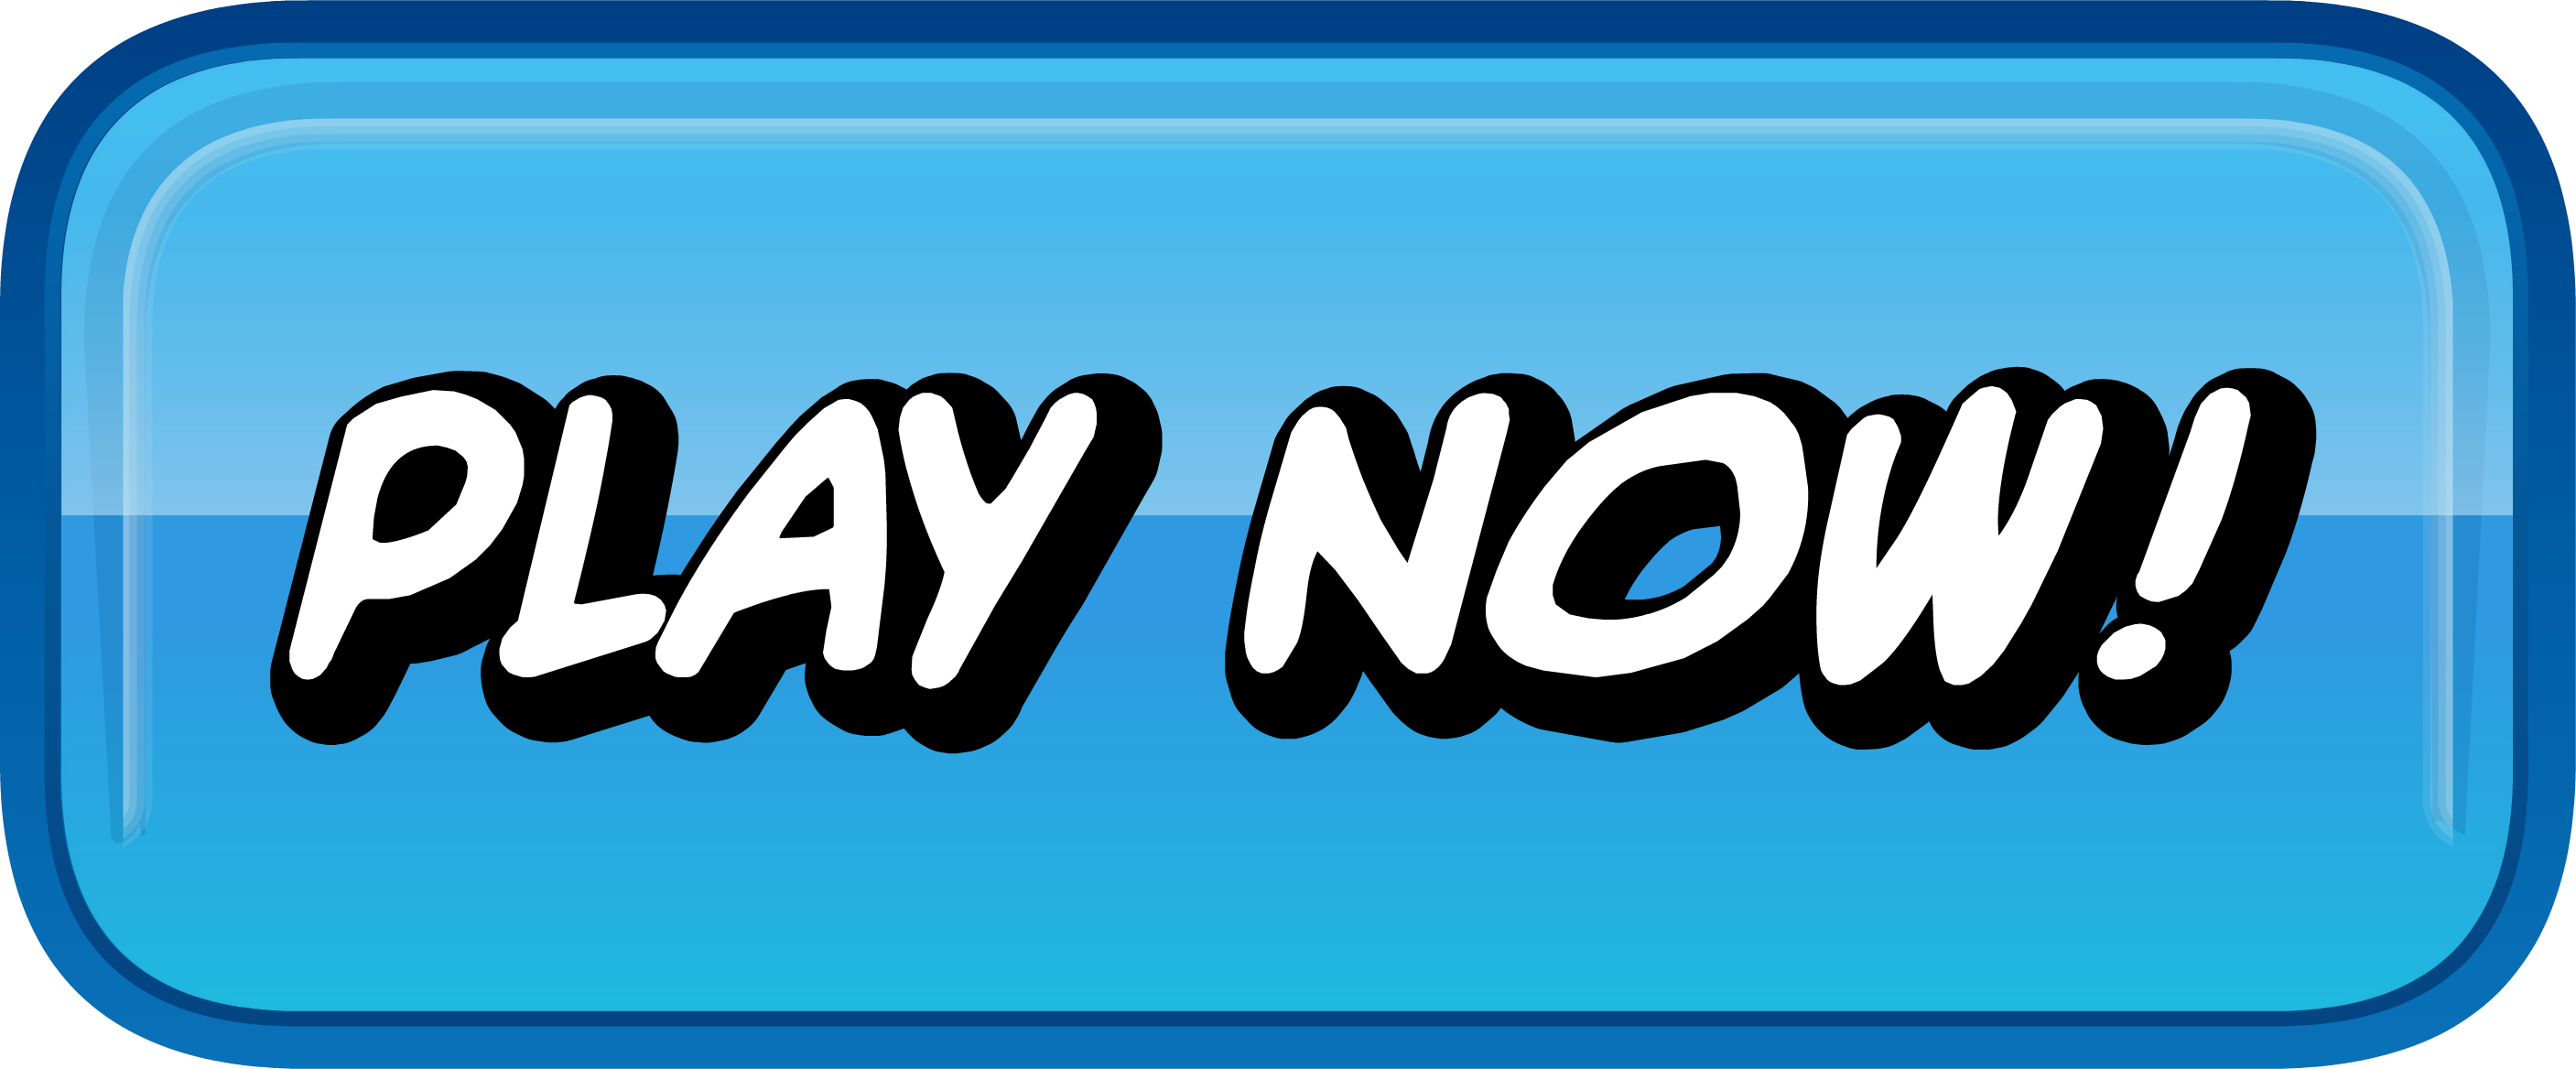 Play Now Button Photos PNG Image